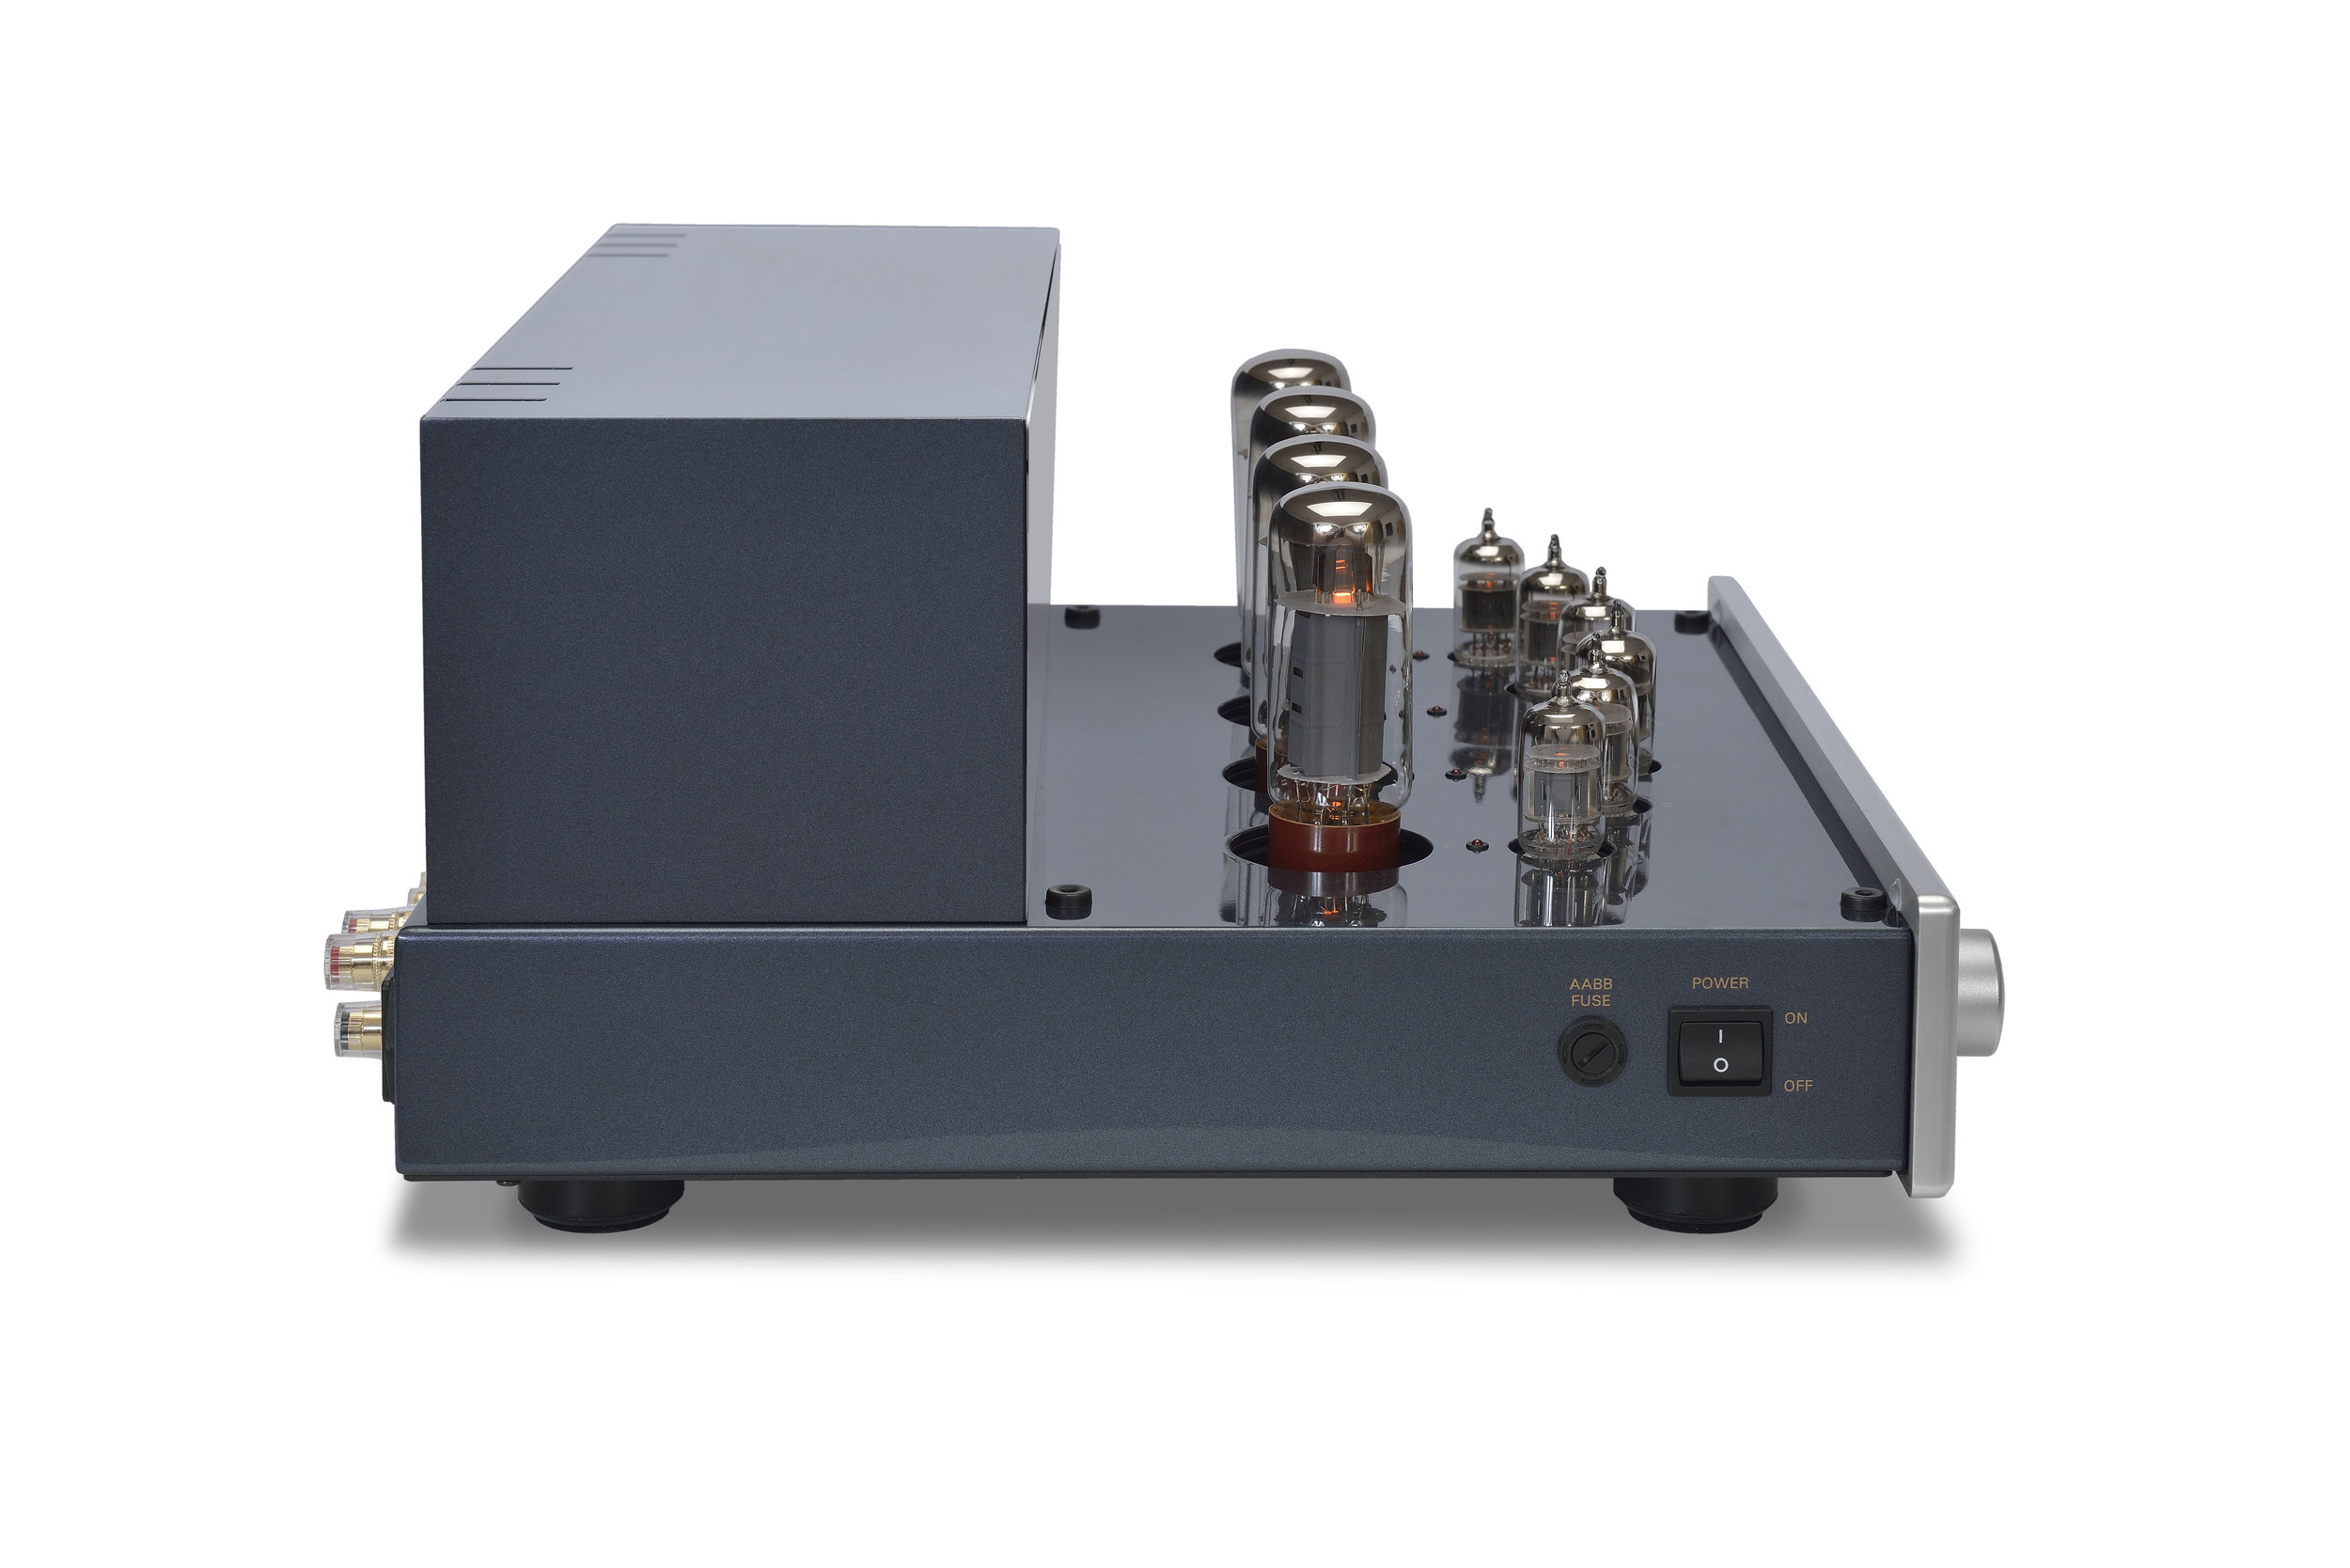 047b - PrimaLuna Evo 300 Tube Integrated Amplifier - silver - quarter turned - without cage - white background - kopie.jpg